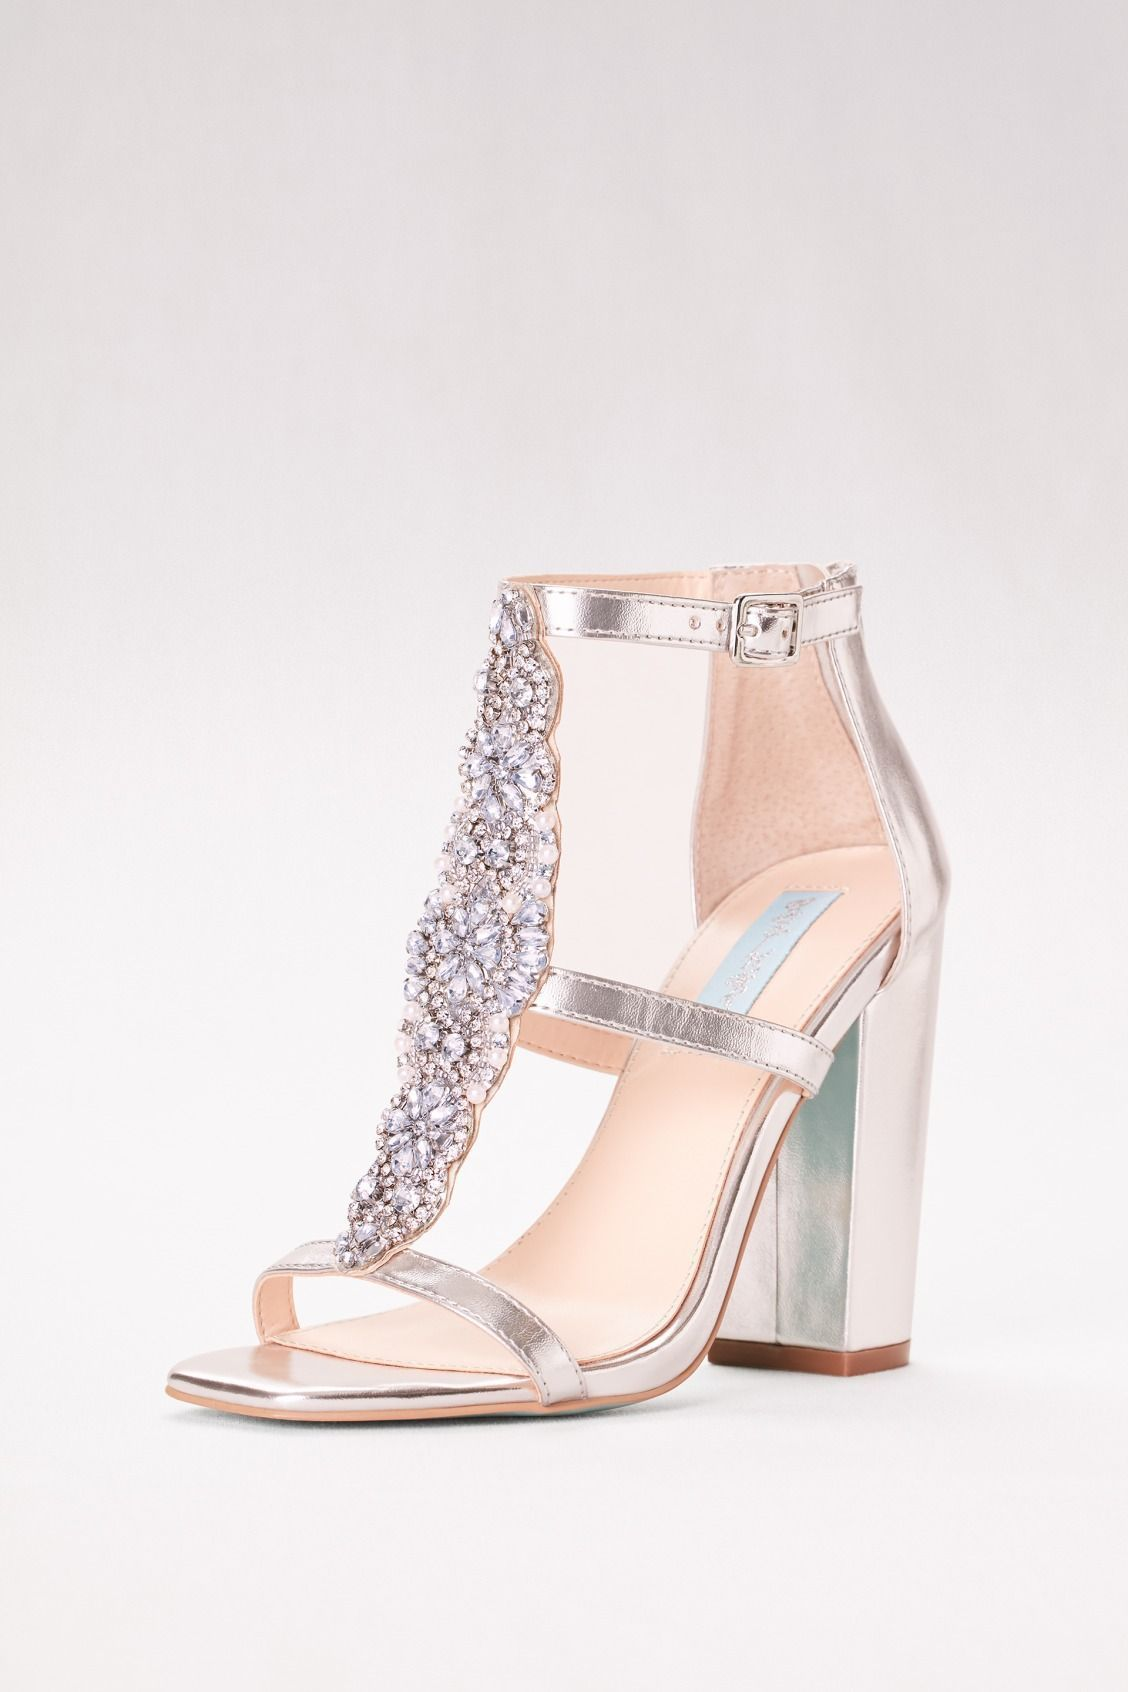 This block heel will allow you to dance all night in comfort